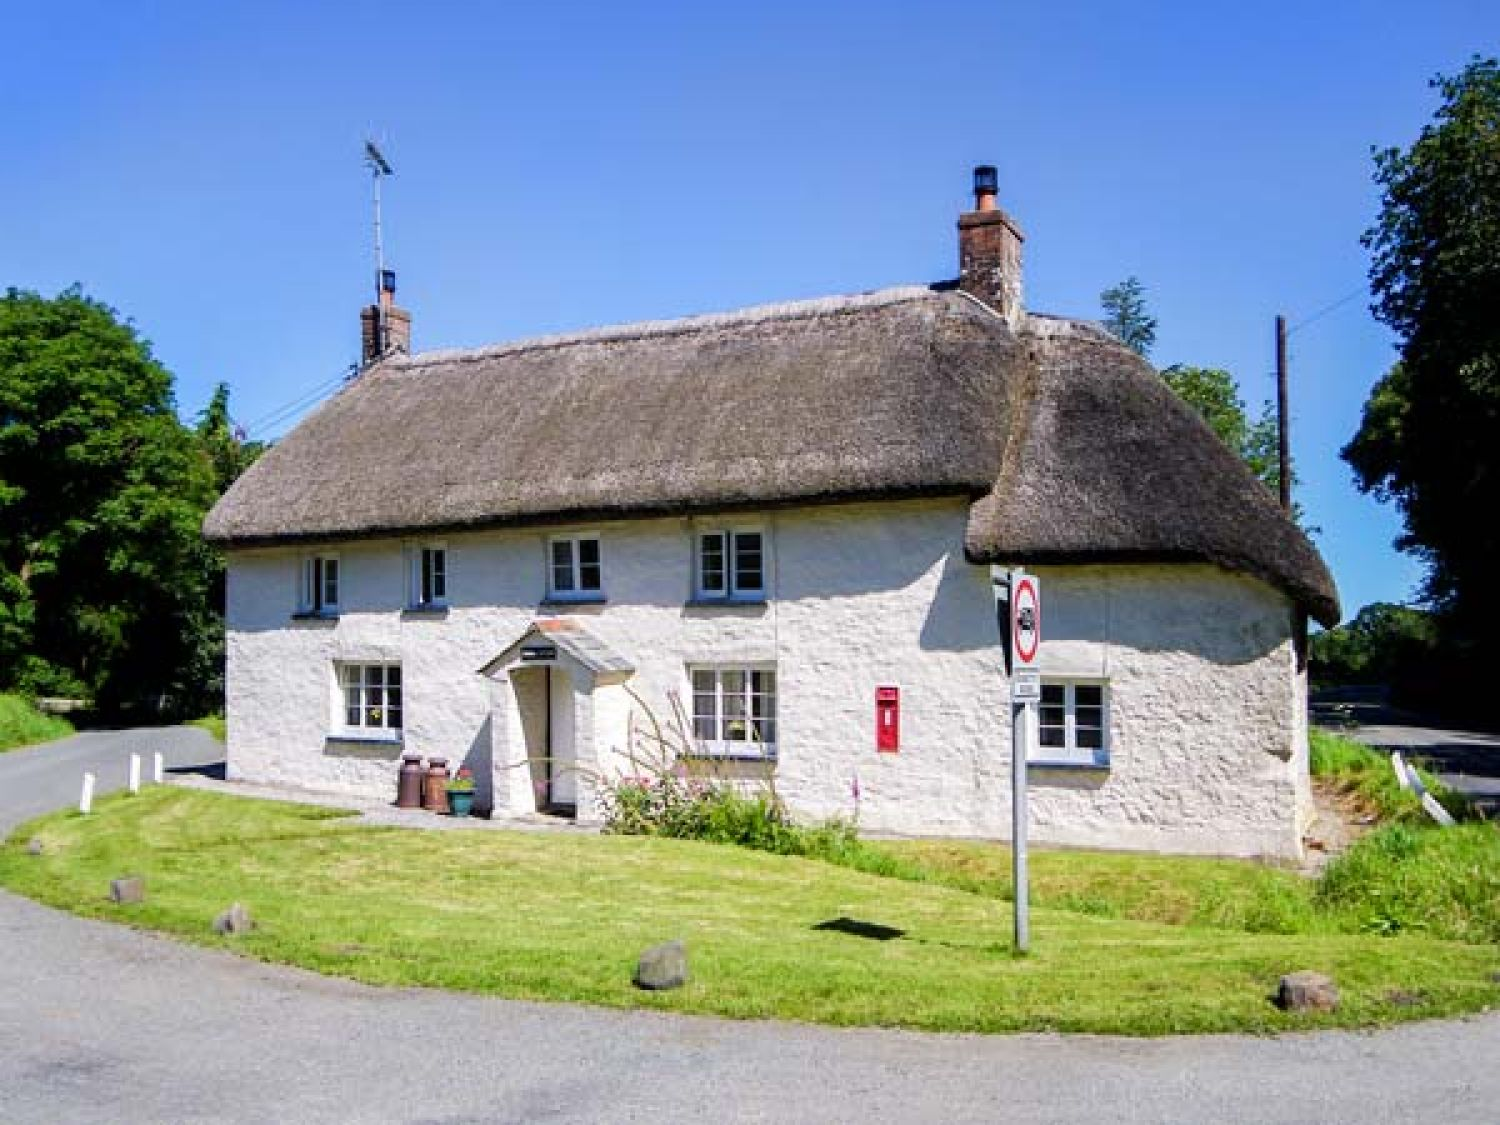 Holiday Cottages in Devon:Priory Cottage, Brightley, Devon | sykescottages.co.uk